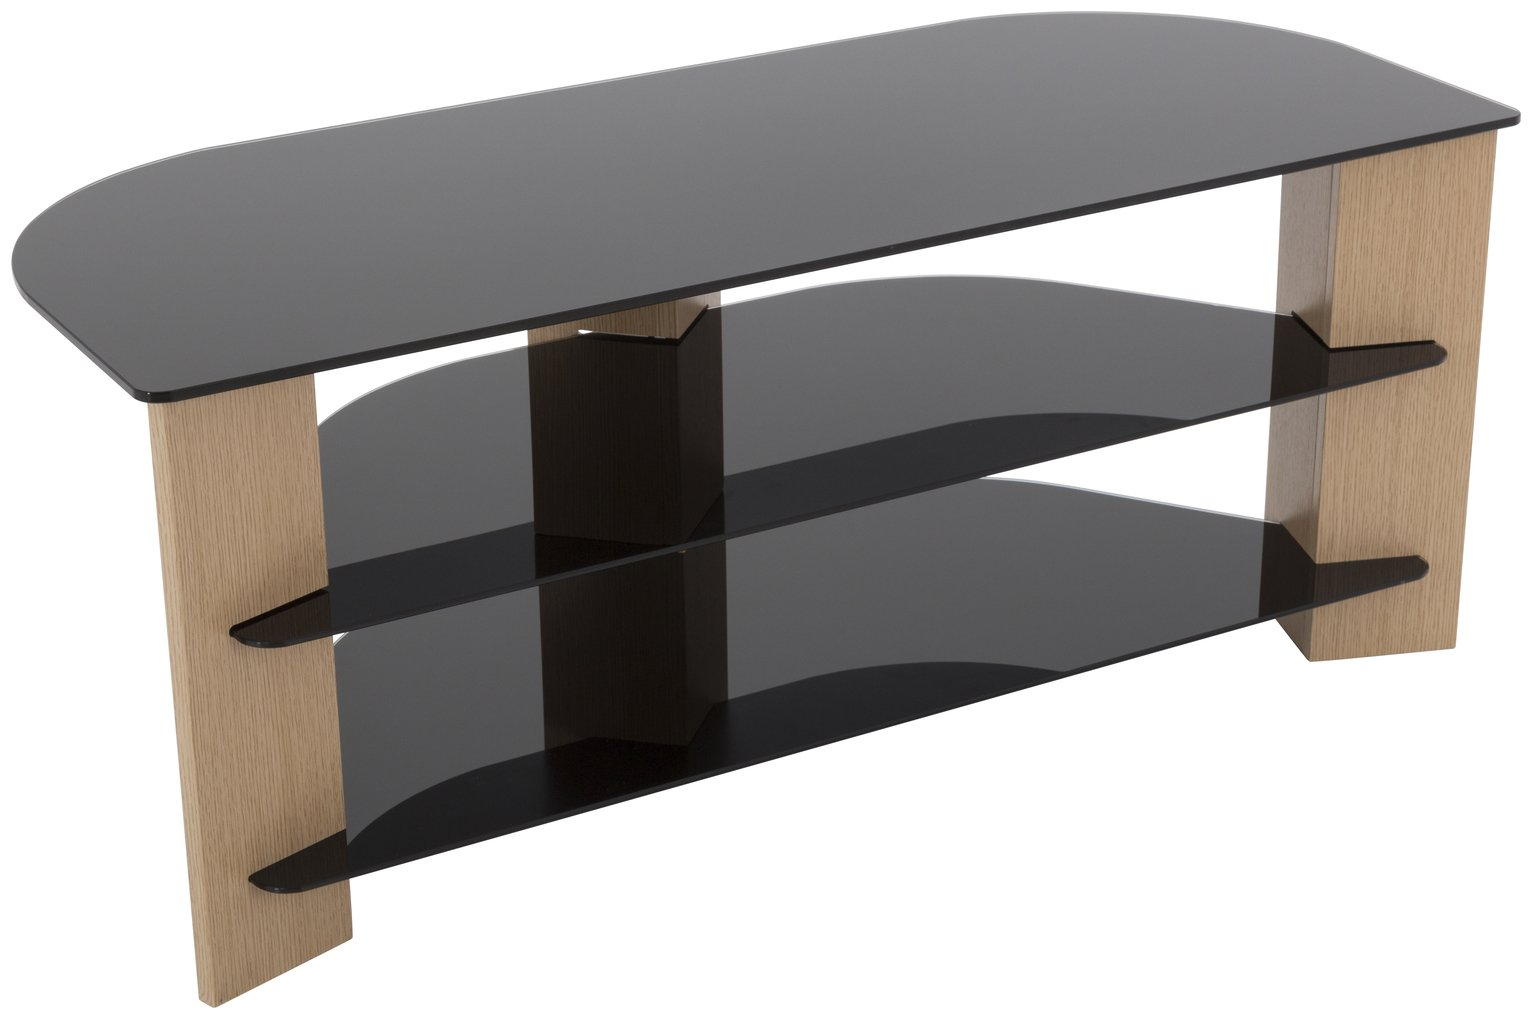 oak-black-glass-55-inch-tv-stand